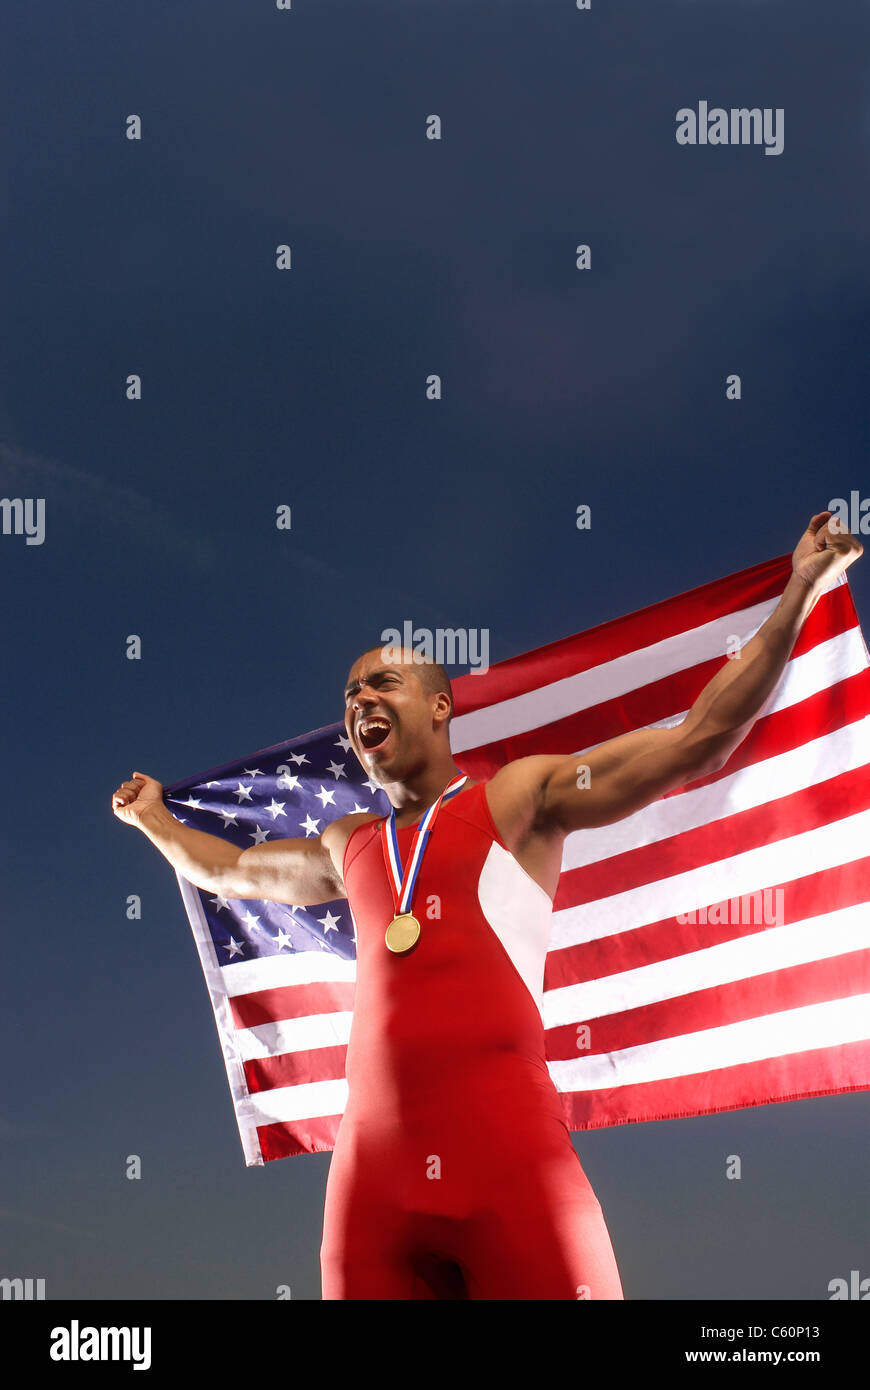 Athlete with medal and American flag - Stock Image